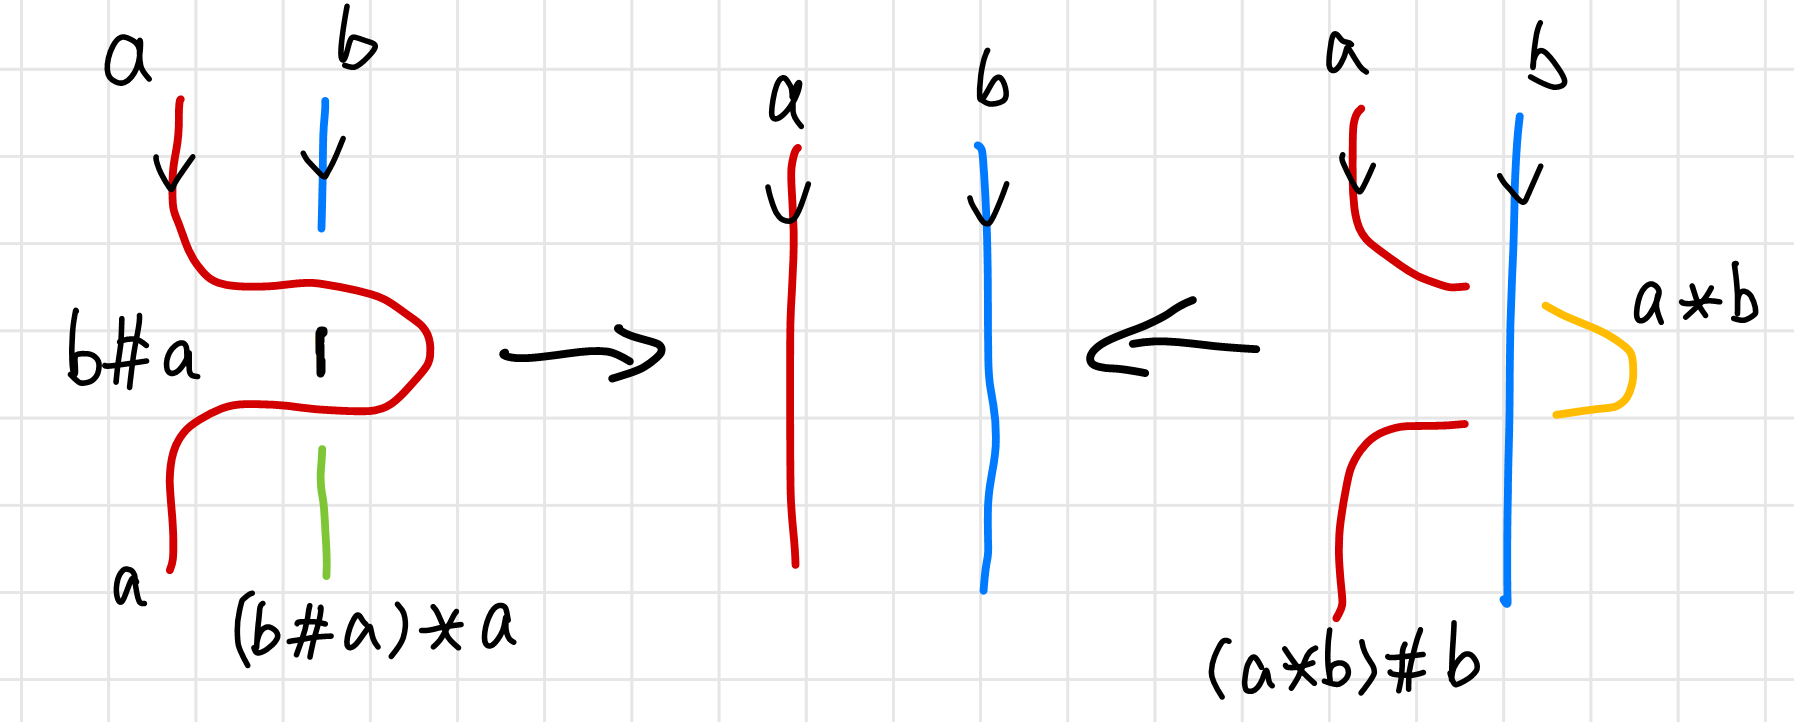 N-colorability and the second Reidemeister move